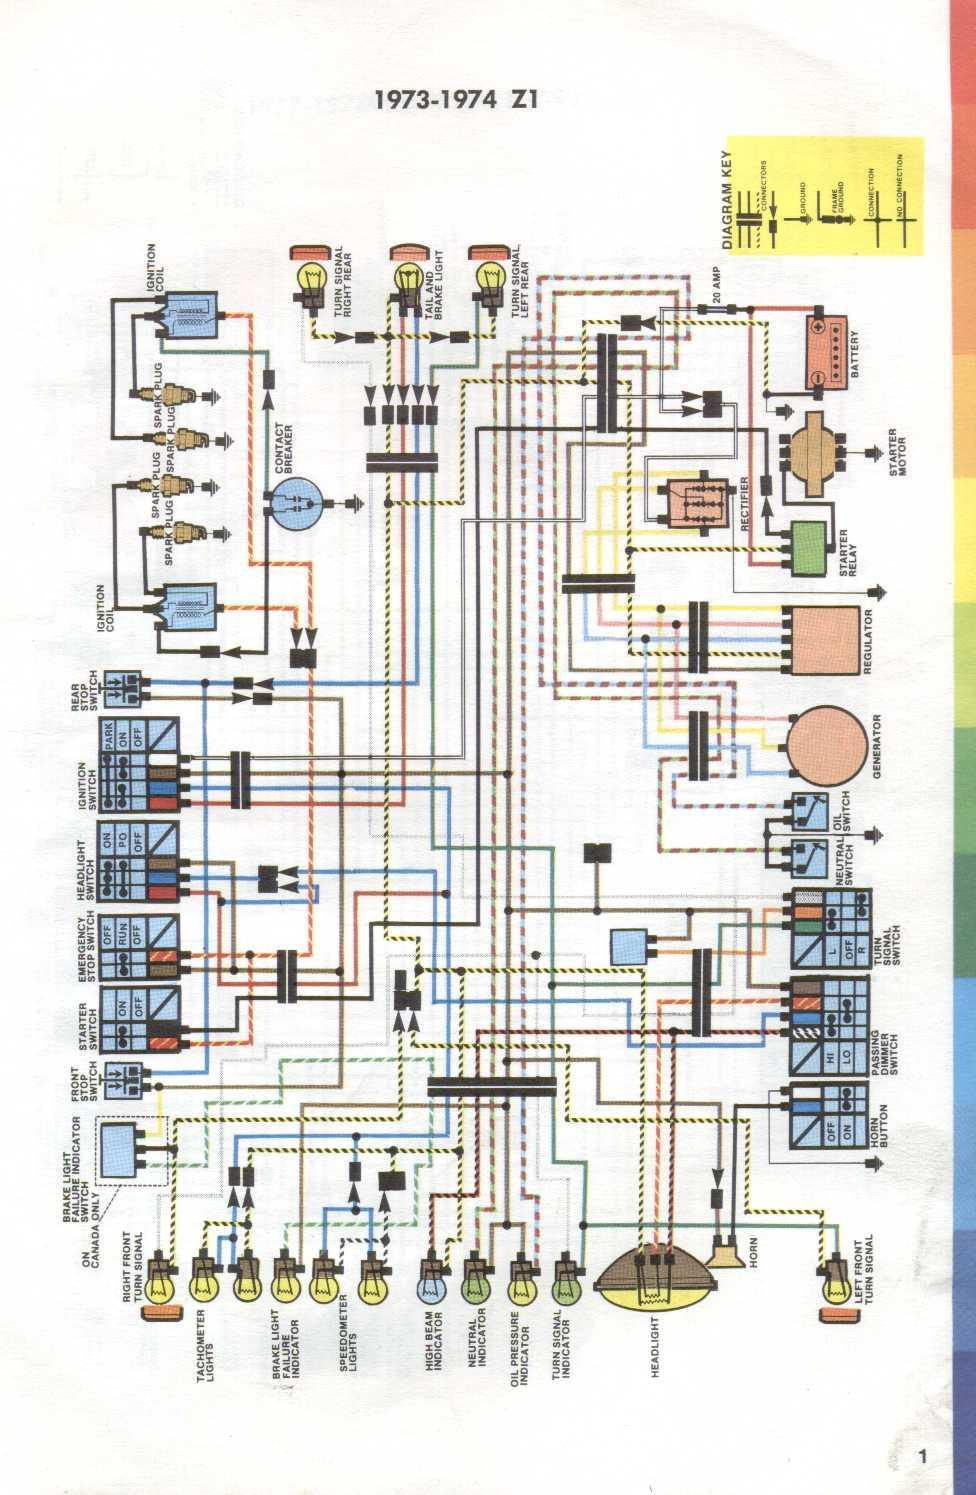 Z1 Wiring Harness Diagram Free For You 74 C10 Identification Loom A B 1972 1975 2002 Chevy